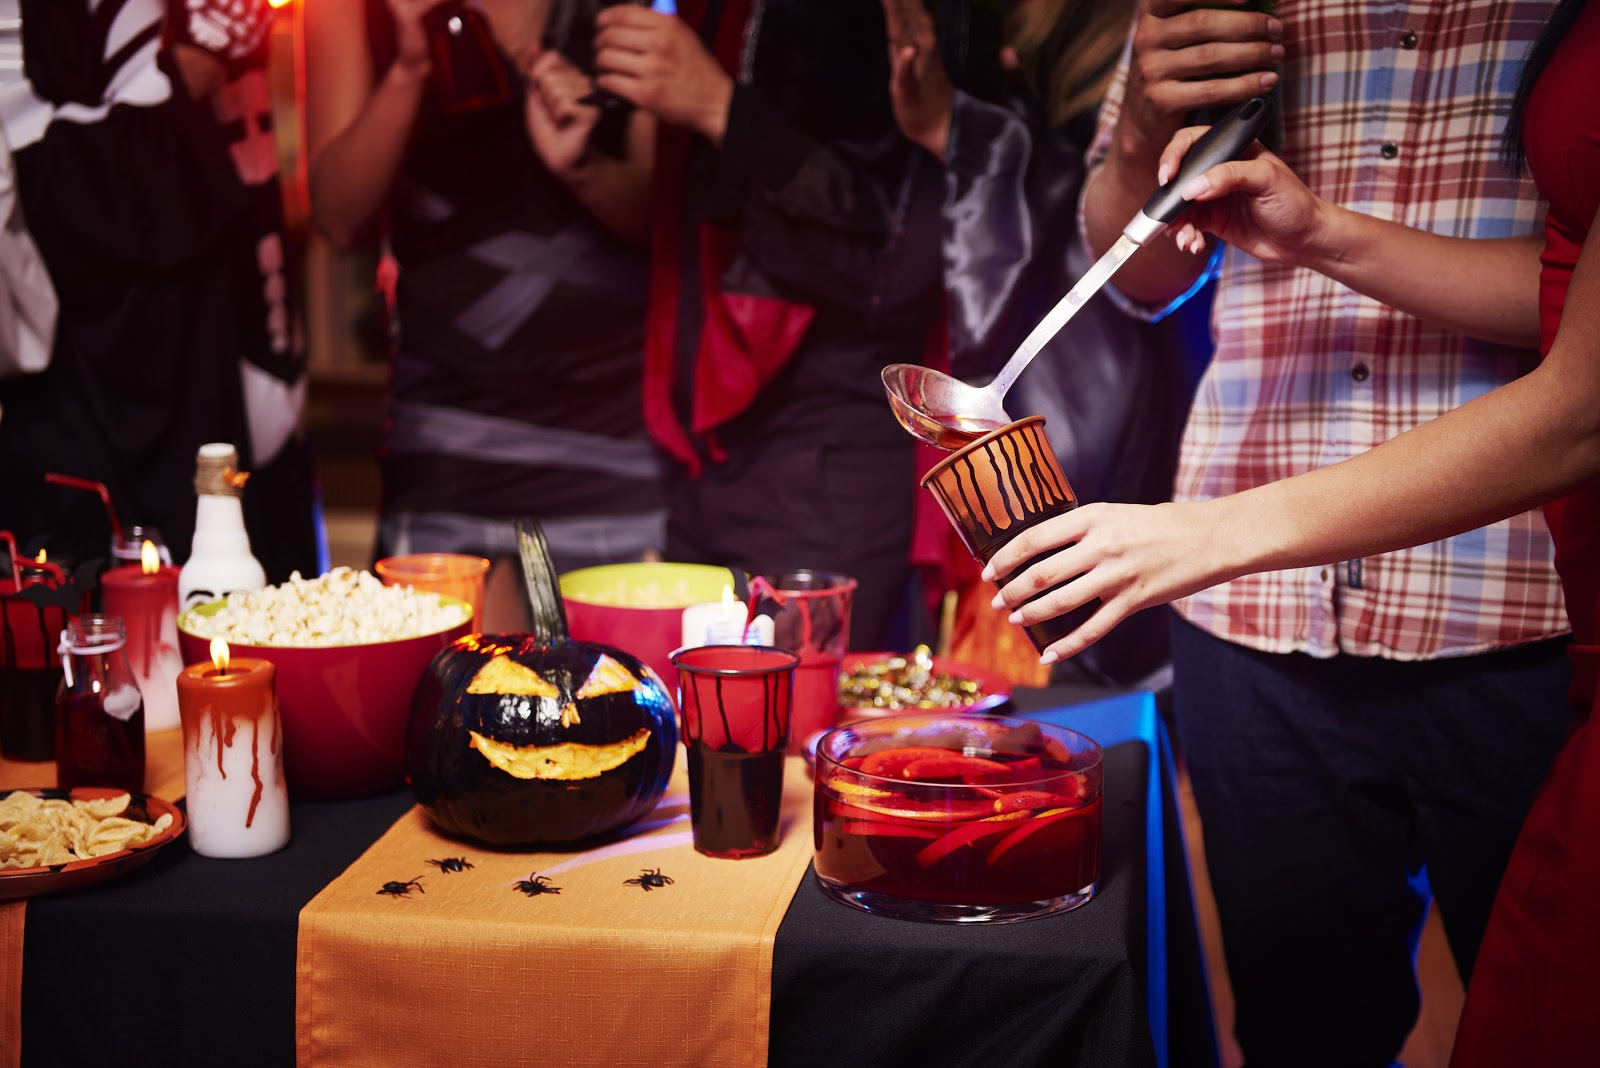 After all, whenever i read i imagine that i'm transported to the world of the book, and i just want everyone to be able to experie. 36 Hauntingly Good Halloween Party Ideas For Any Budget Stationers